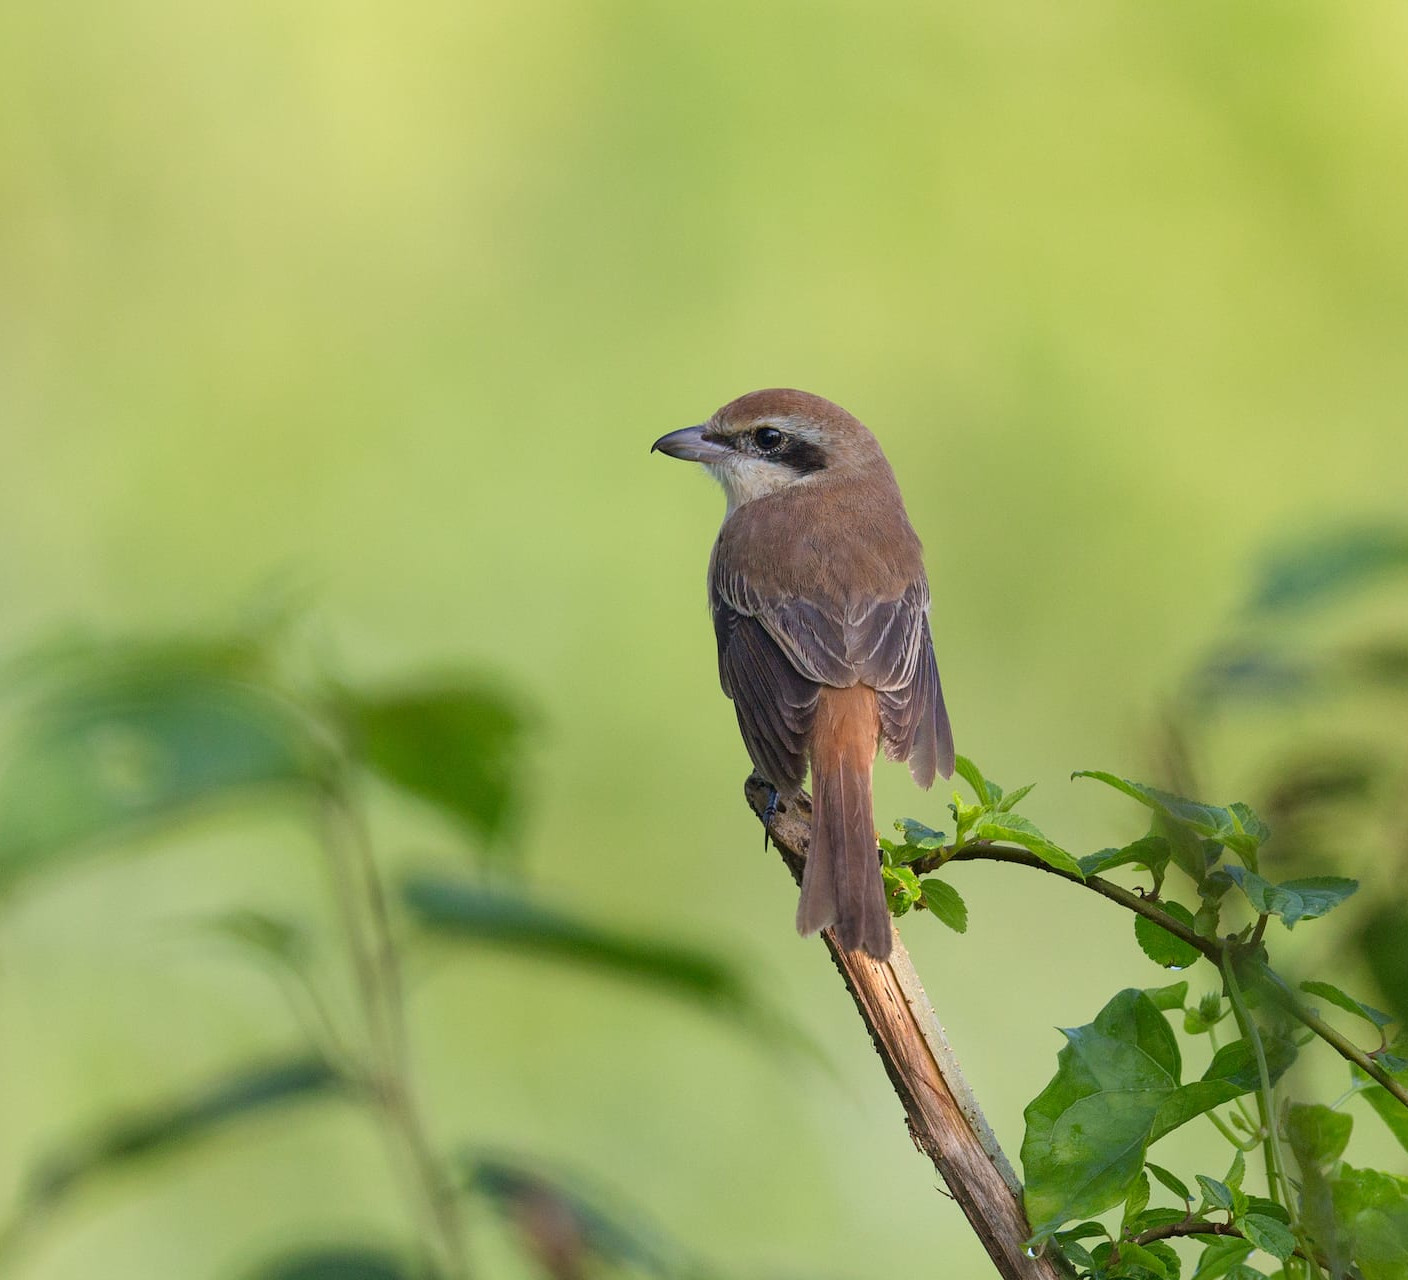 Sticking Point: Bewitched by the Brown Shrike